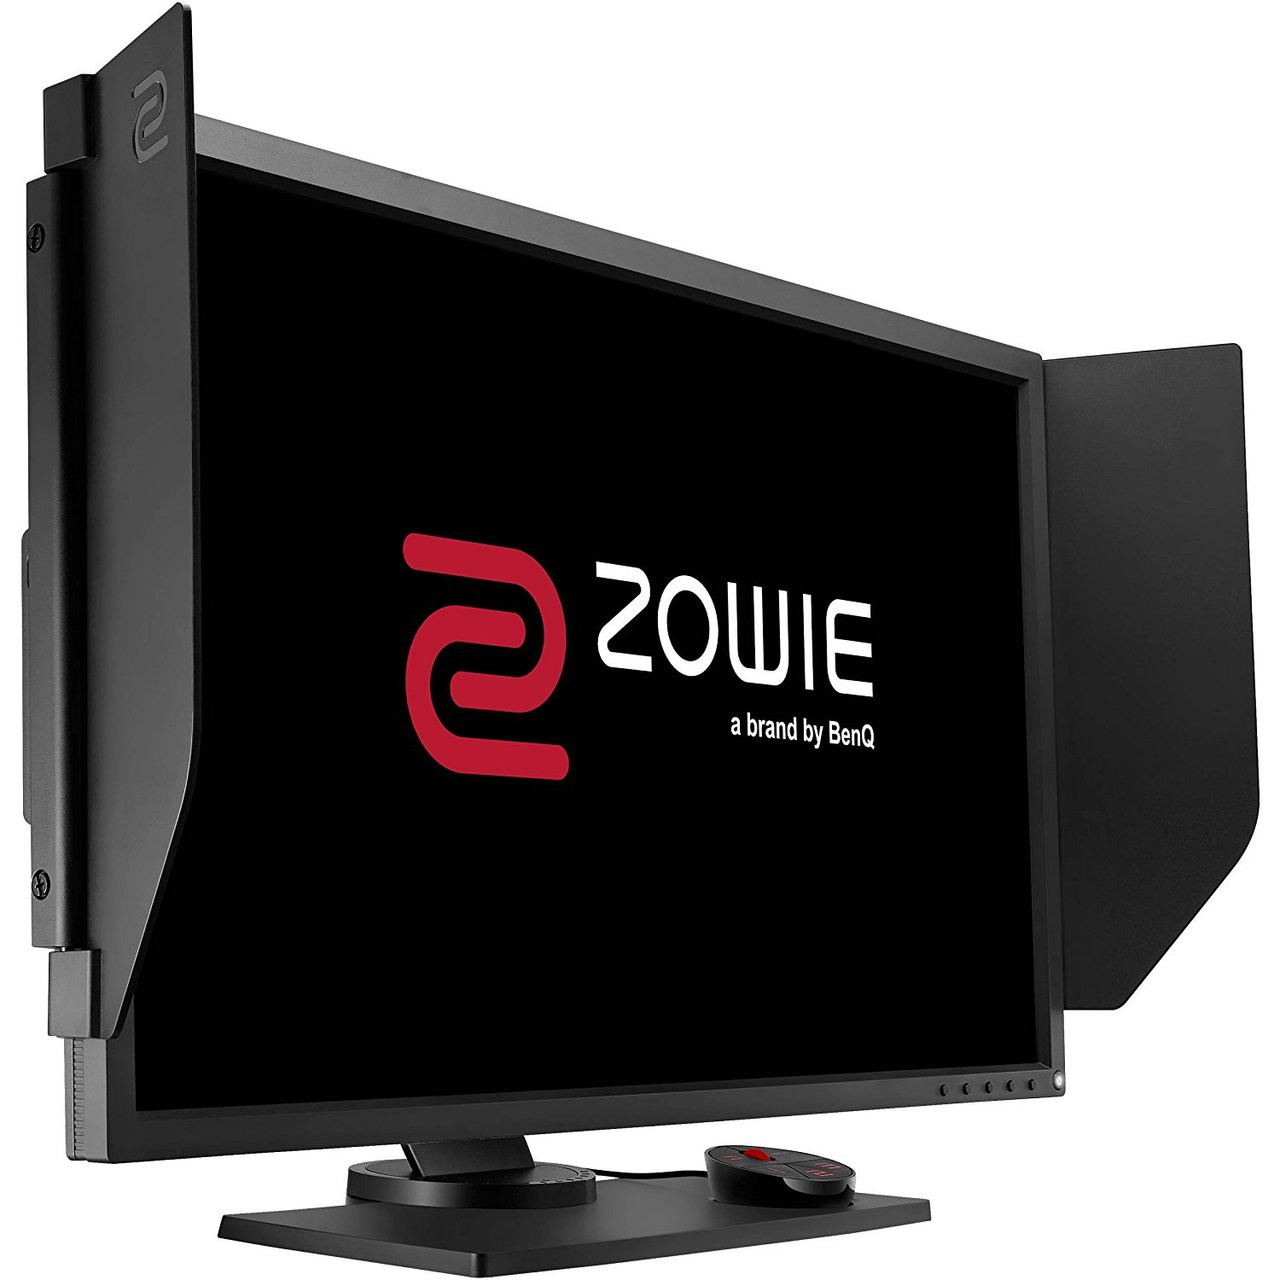 BenQ Zowie 27 inch 240Hz Esports Gaming Monitor, 1080p, 1ms Response Time, Black Equalizer, Color Vibrance, S-Switch, Shield, Height Adjustable ( XL2740 )